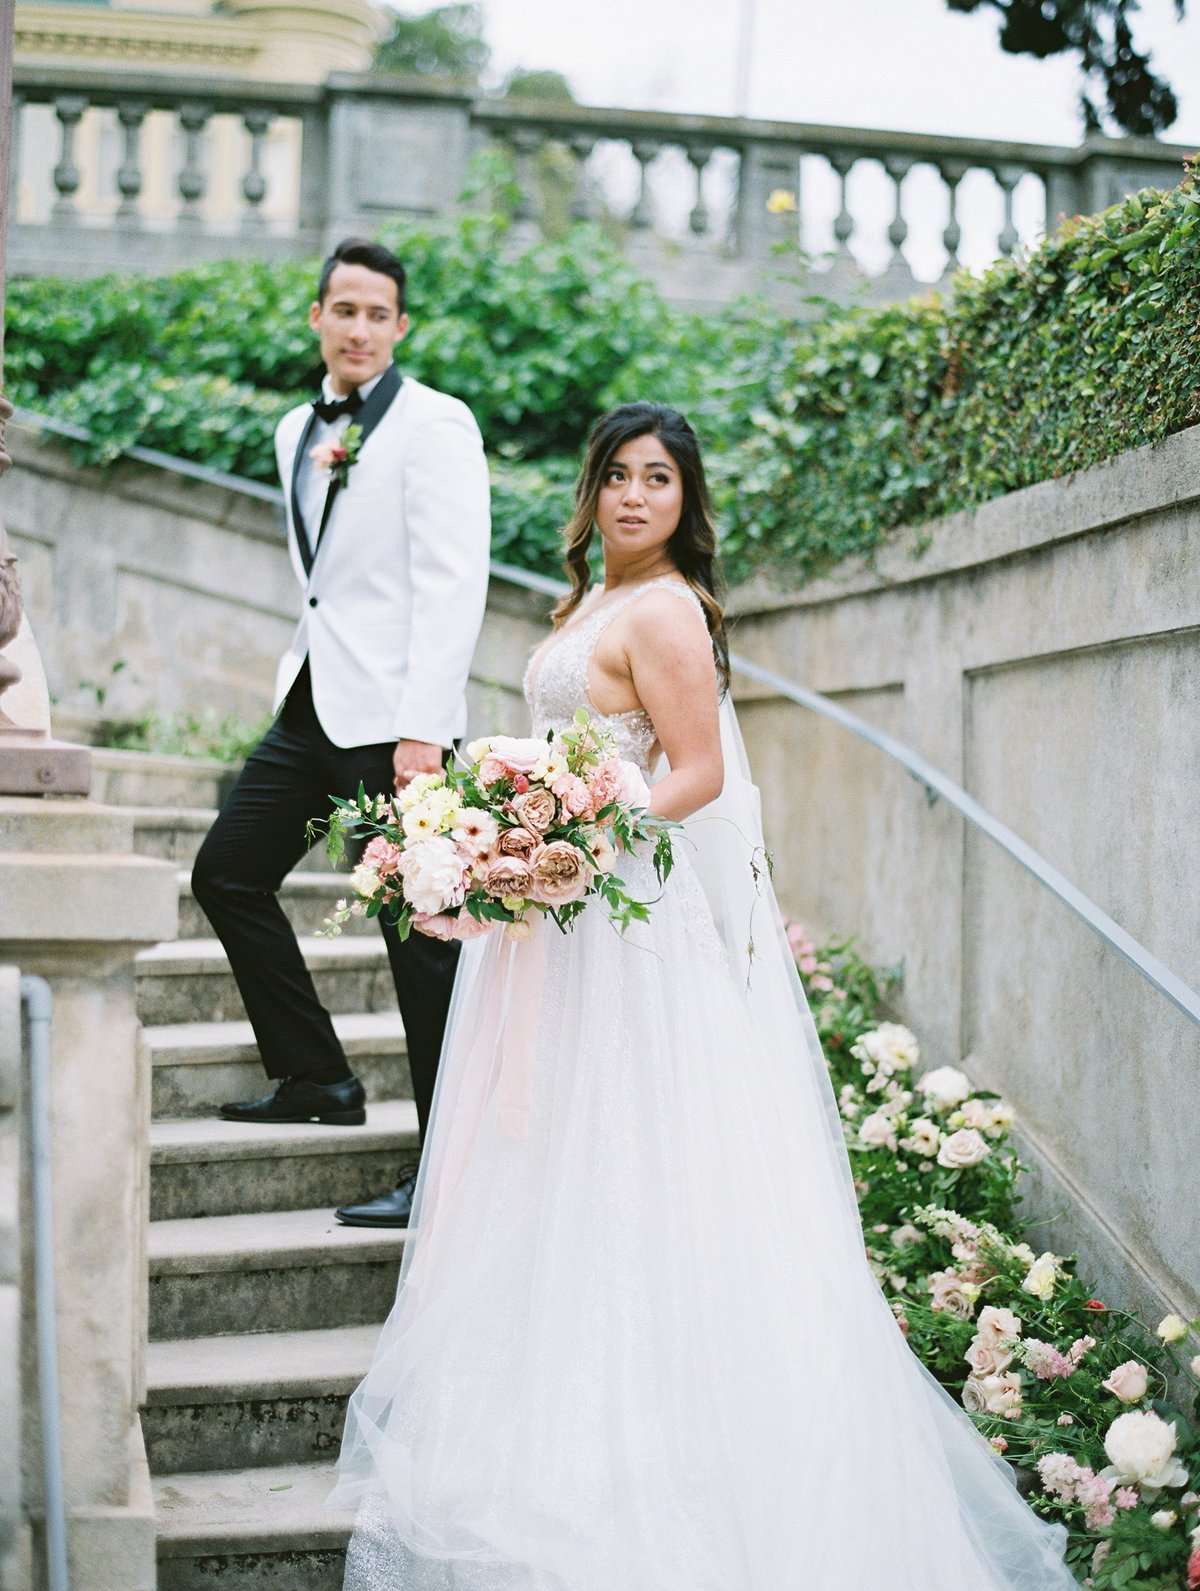 daniel-and-bethany-weddings-groom-bride-walking-stairs